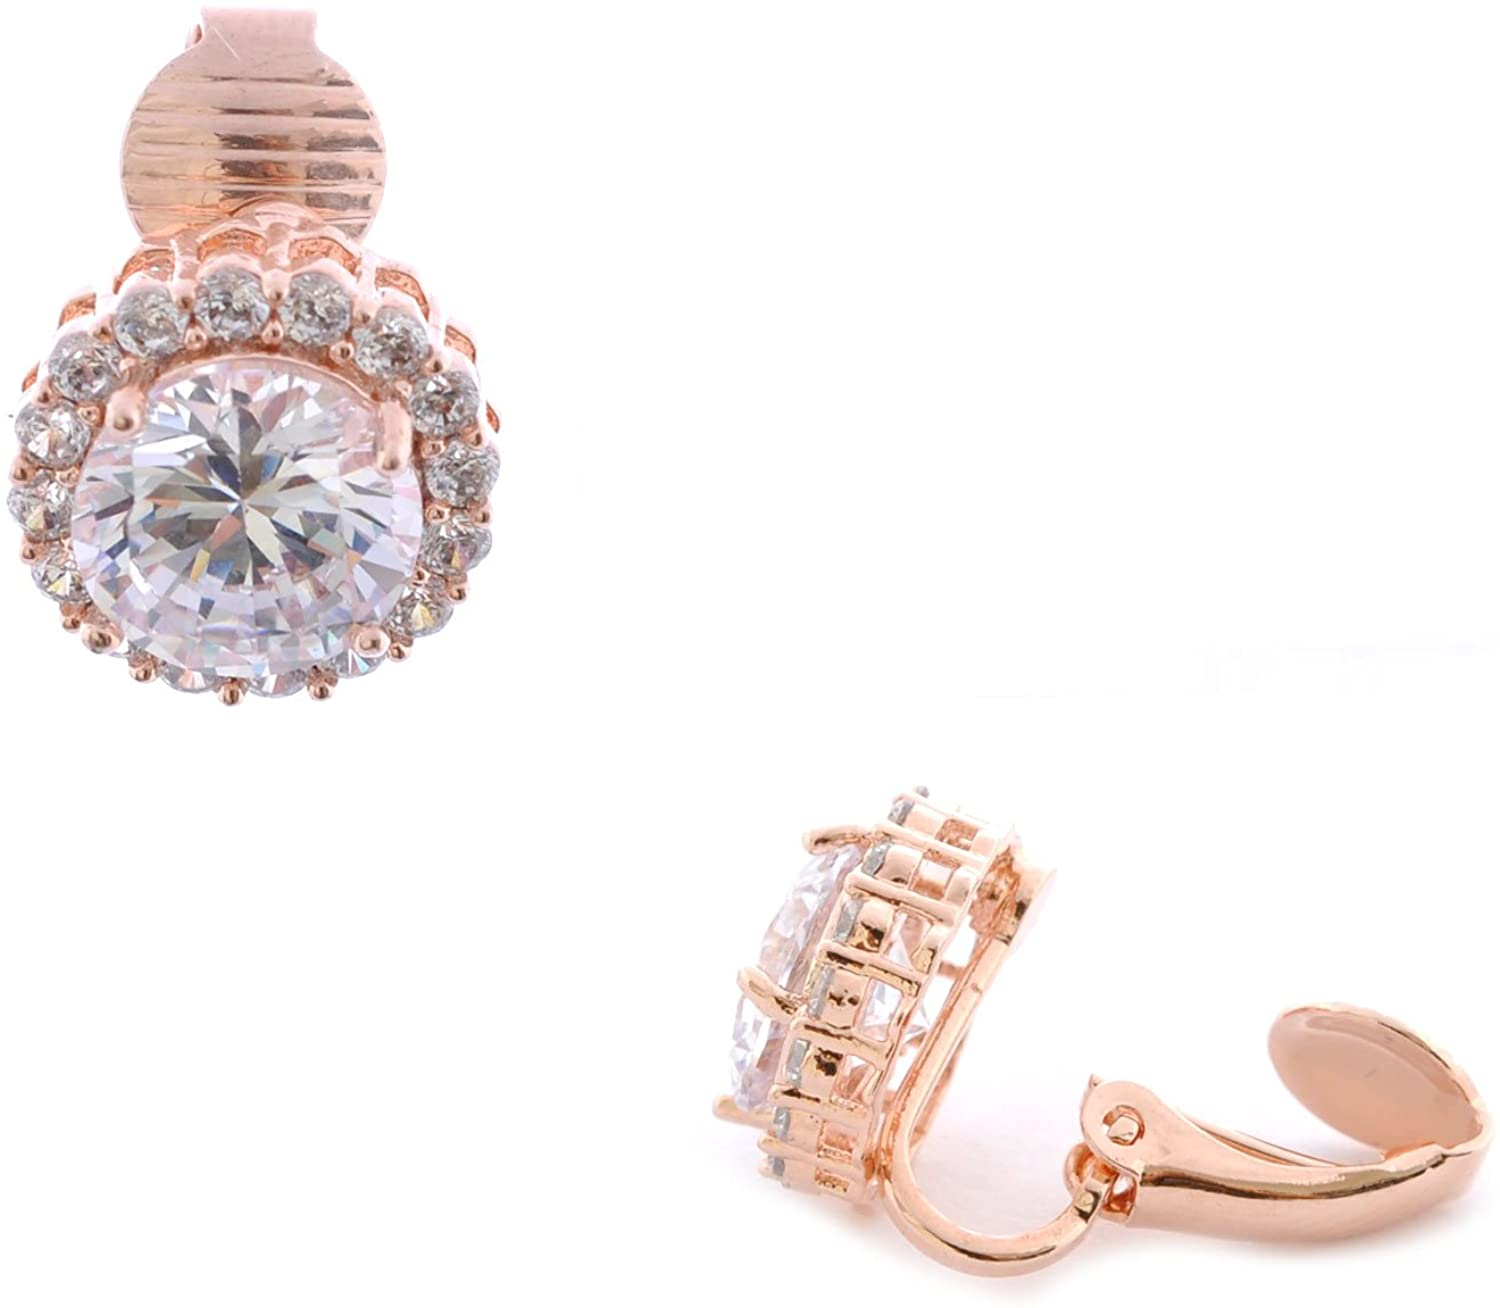 Topwholesalejewel Fashion Earrings Rose Gold Plating Clip On Earrings